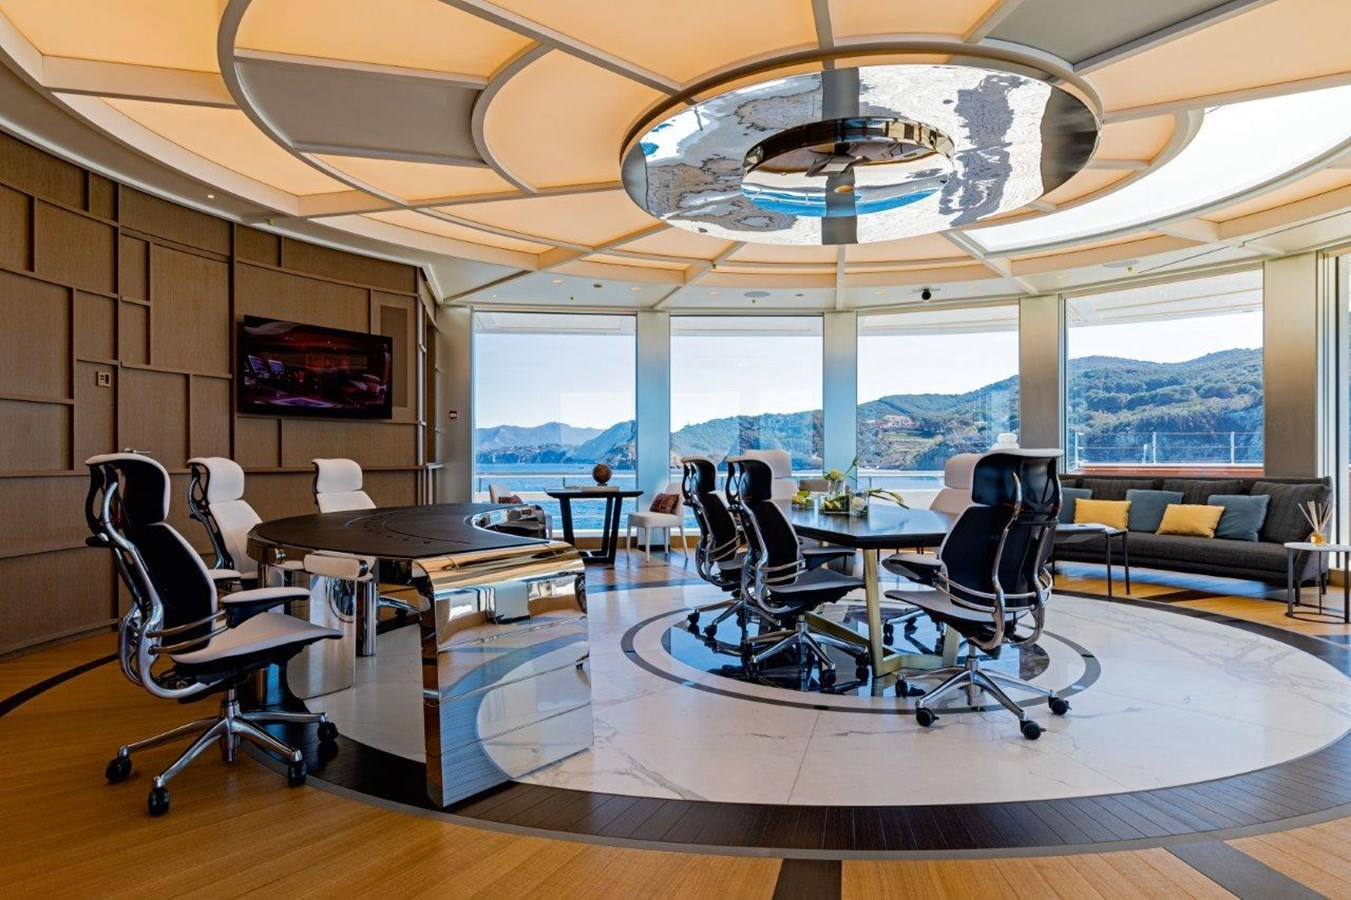 Owners Office Forward On Owners Deck, PA's Office Adjacent 2020 BENETTI Displacement Motor Yacht Motor Yacht 2918040